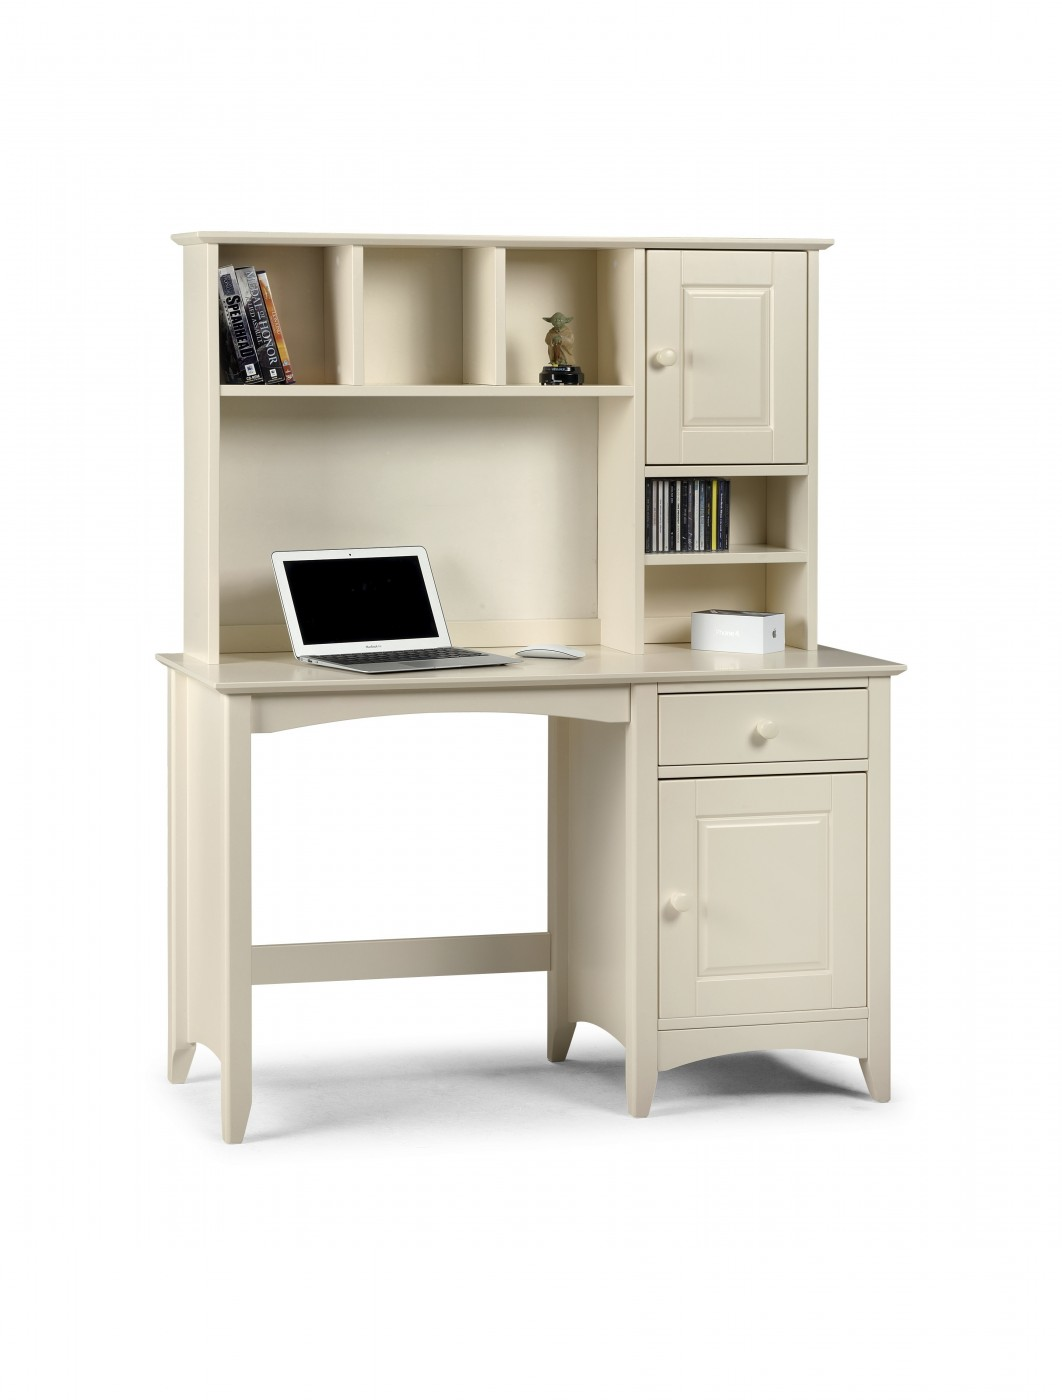 Marvelous photograph of Home Workstations Cameo Desk CAM012 121 Office Furniture with #966E35 color and 1062x1400 pixels